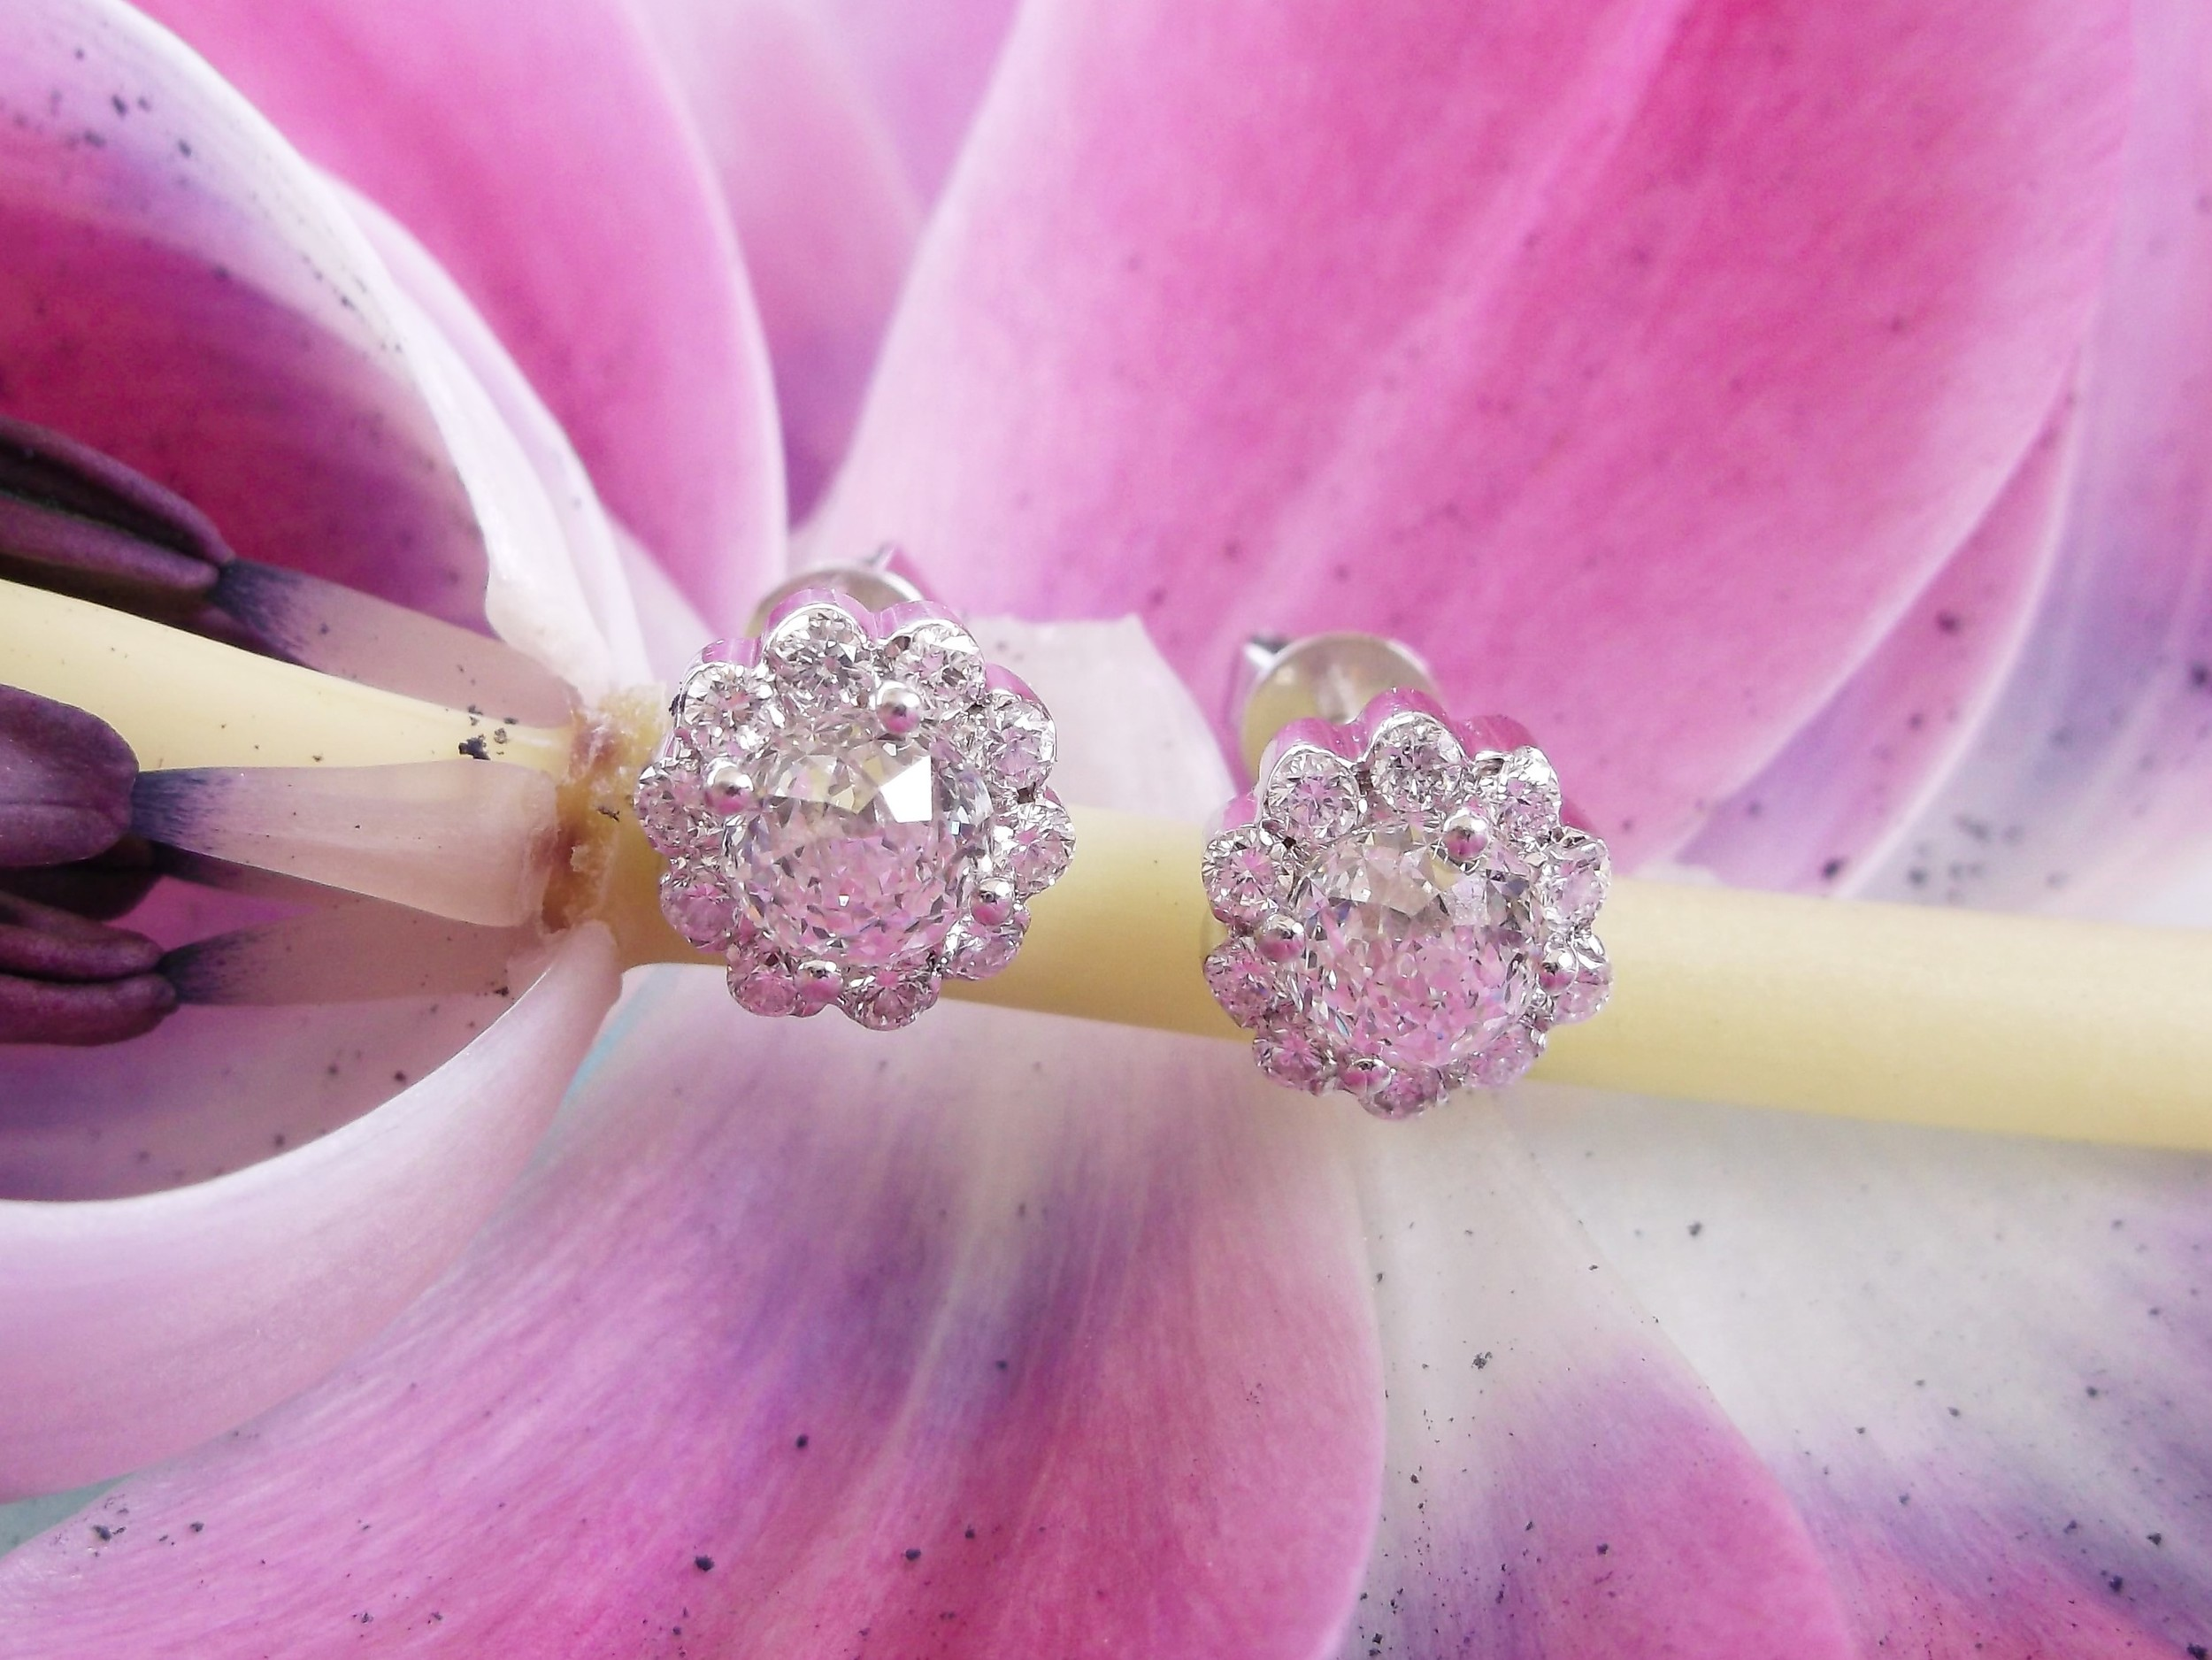 SOLD - Lovely white gold and diamond cluster earrings with a center briolette style diamond surrounded by smaller round diamonds.